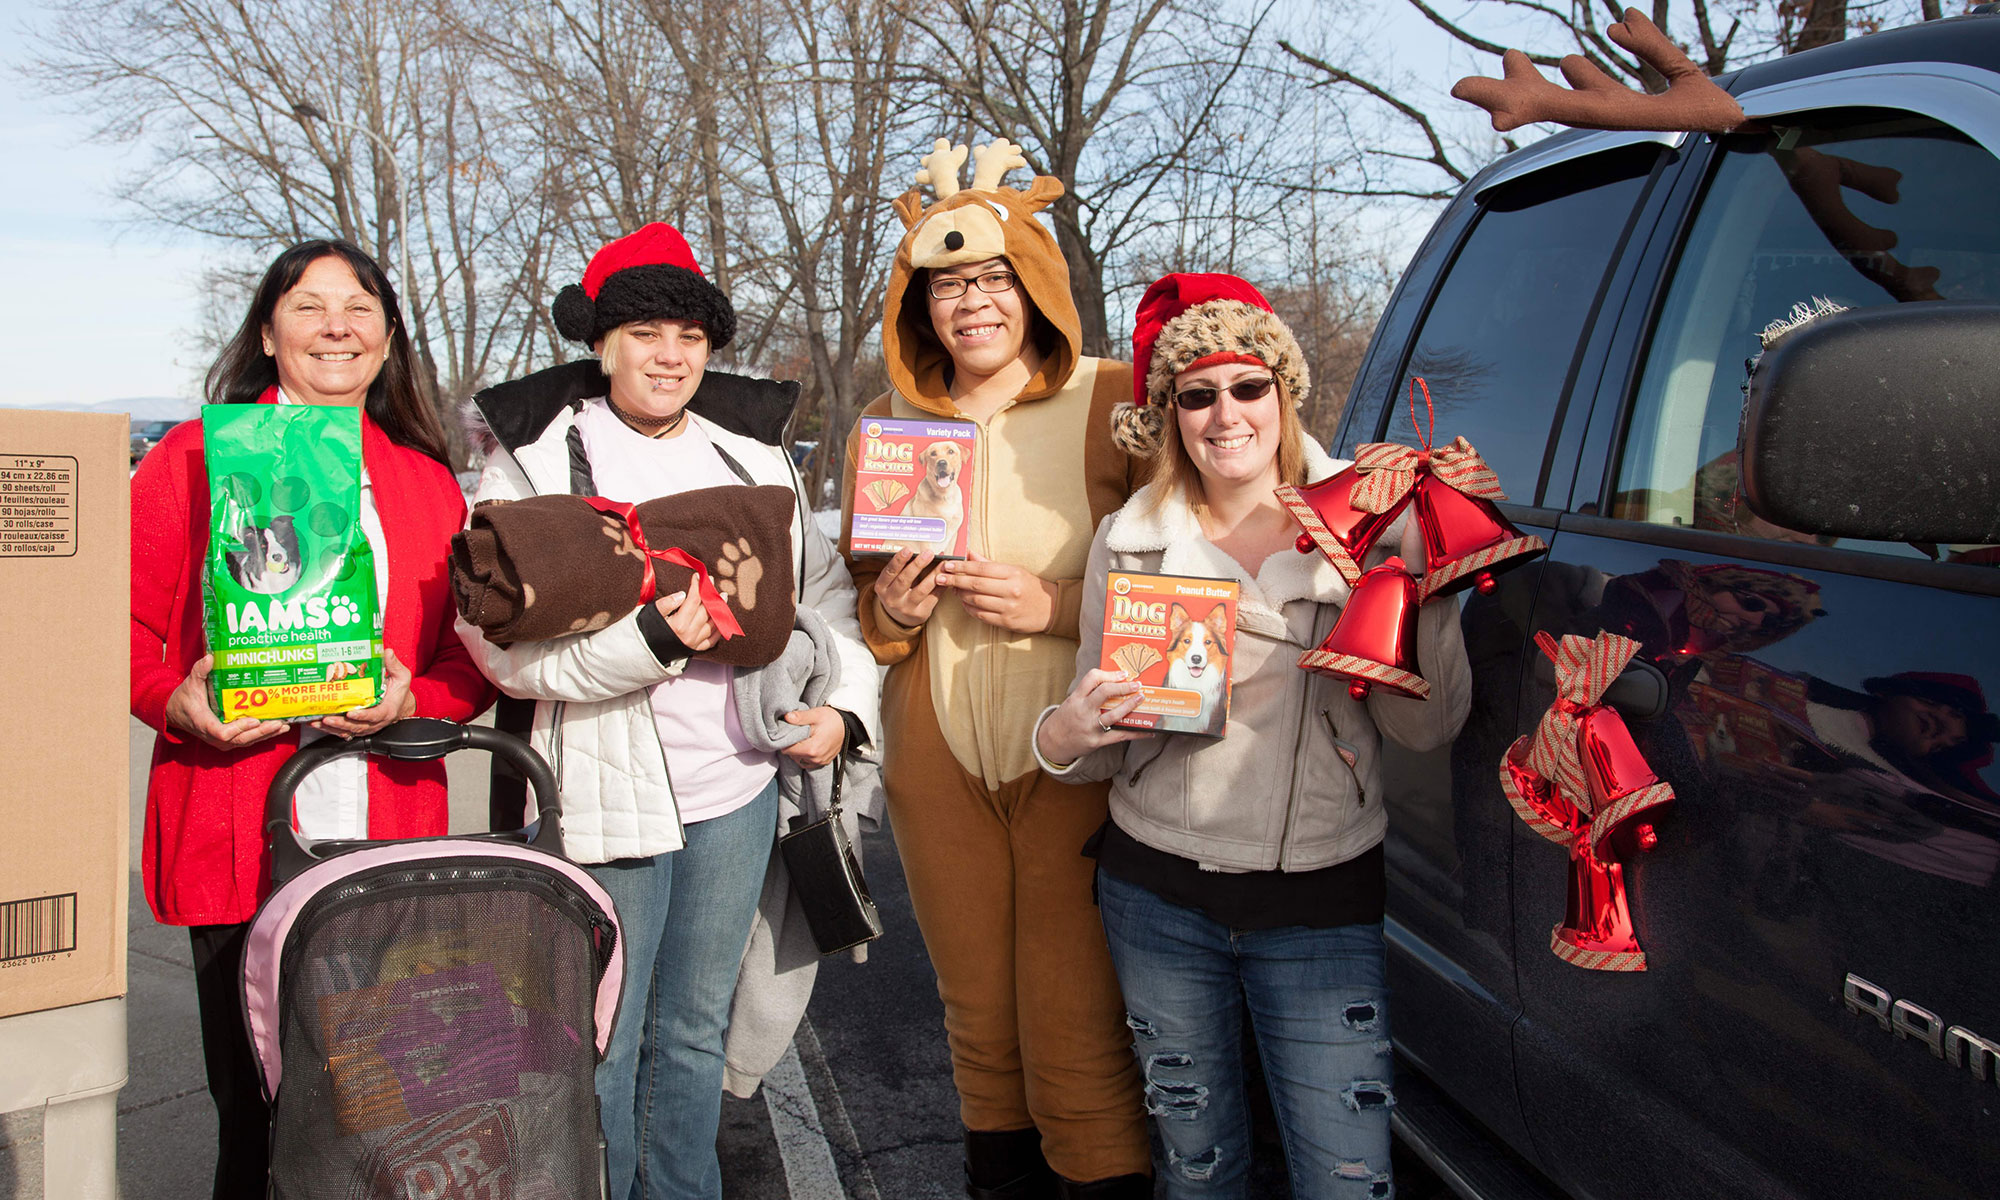 Ulster County Community College Vet Tech Club members outside with donations for the ASPCA.